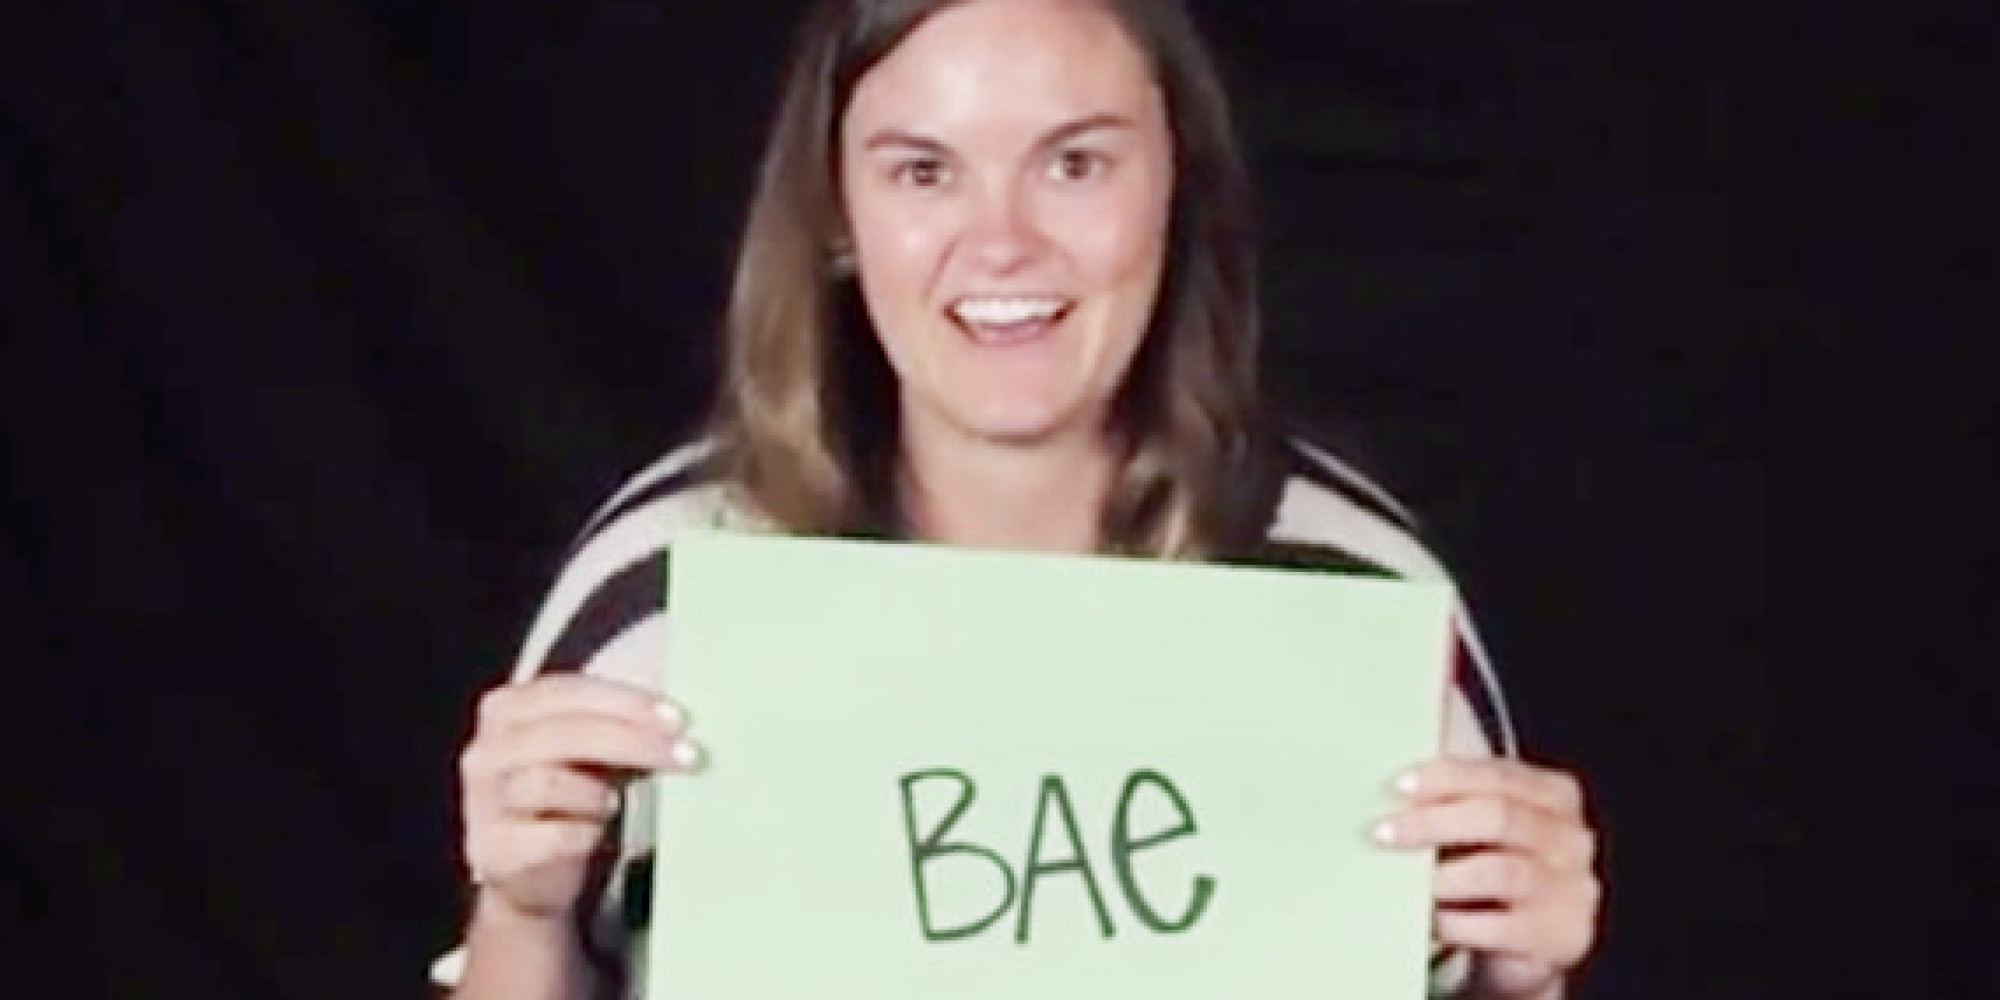 Watch Real Teens Try to Decipher Slang Words FromClueless'